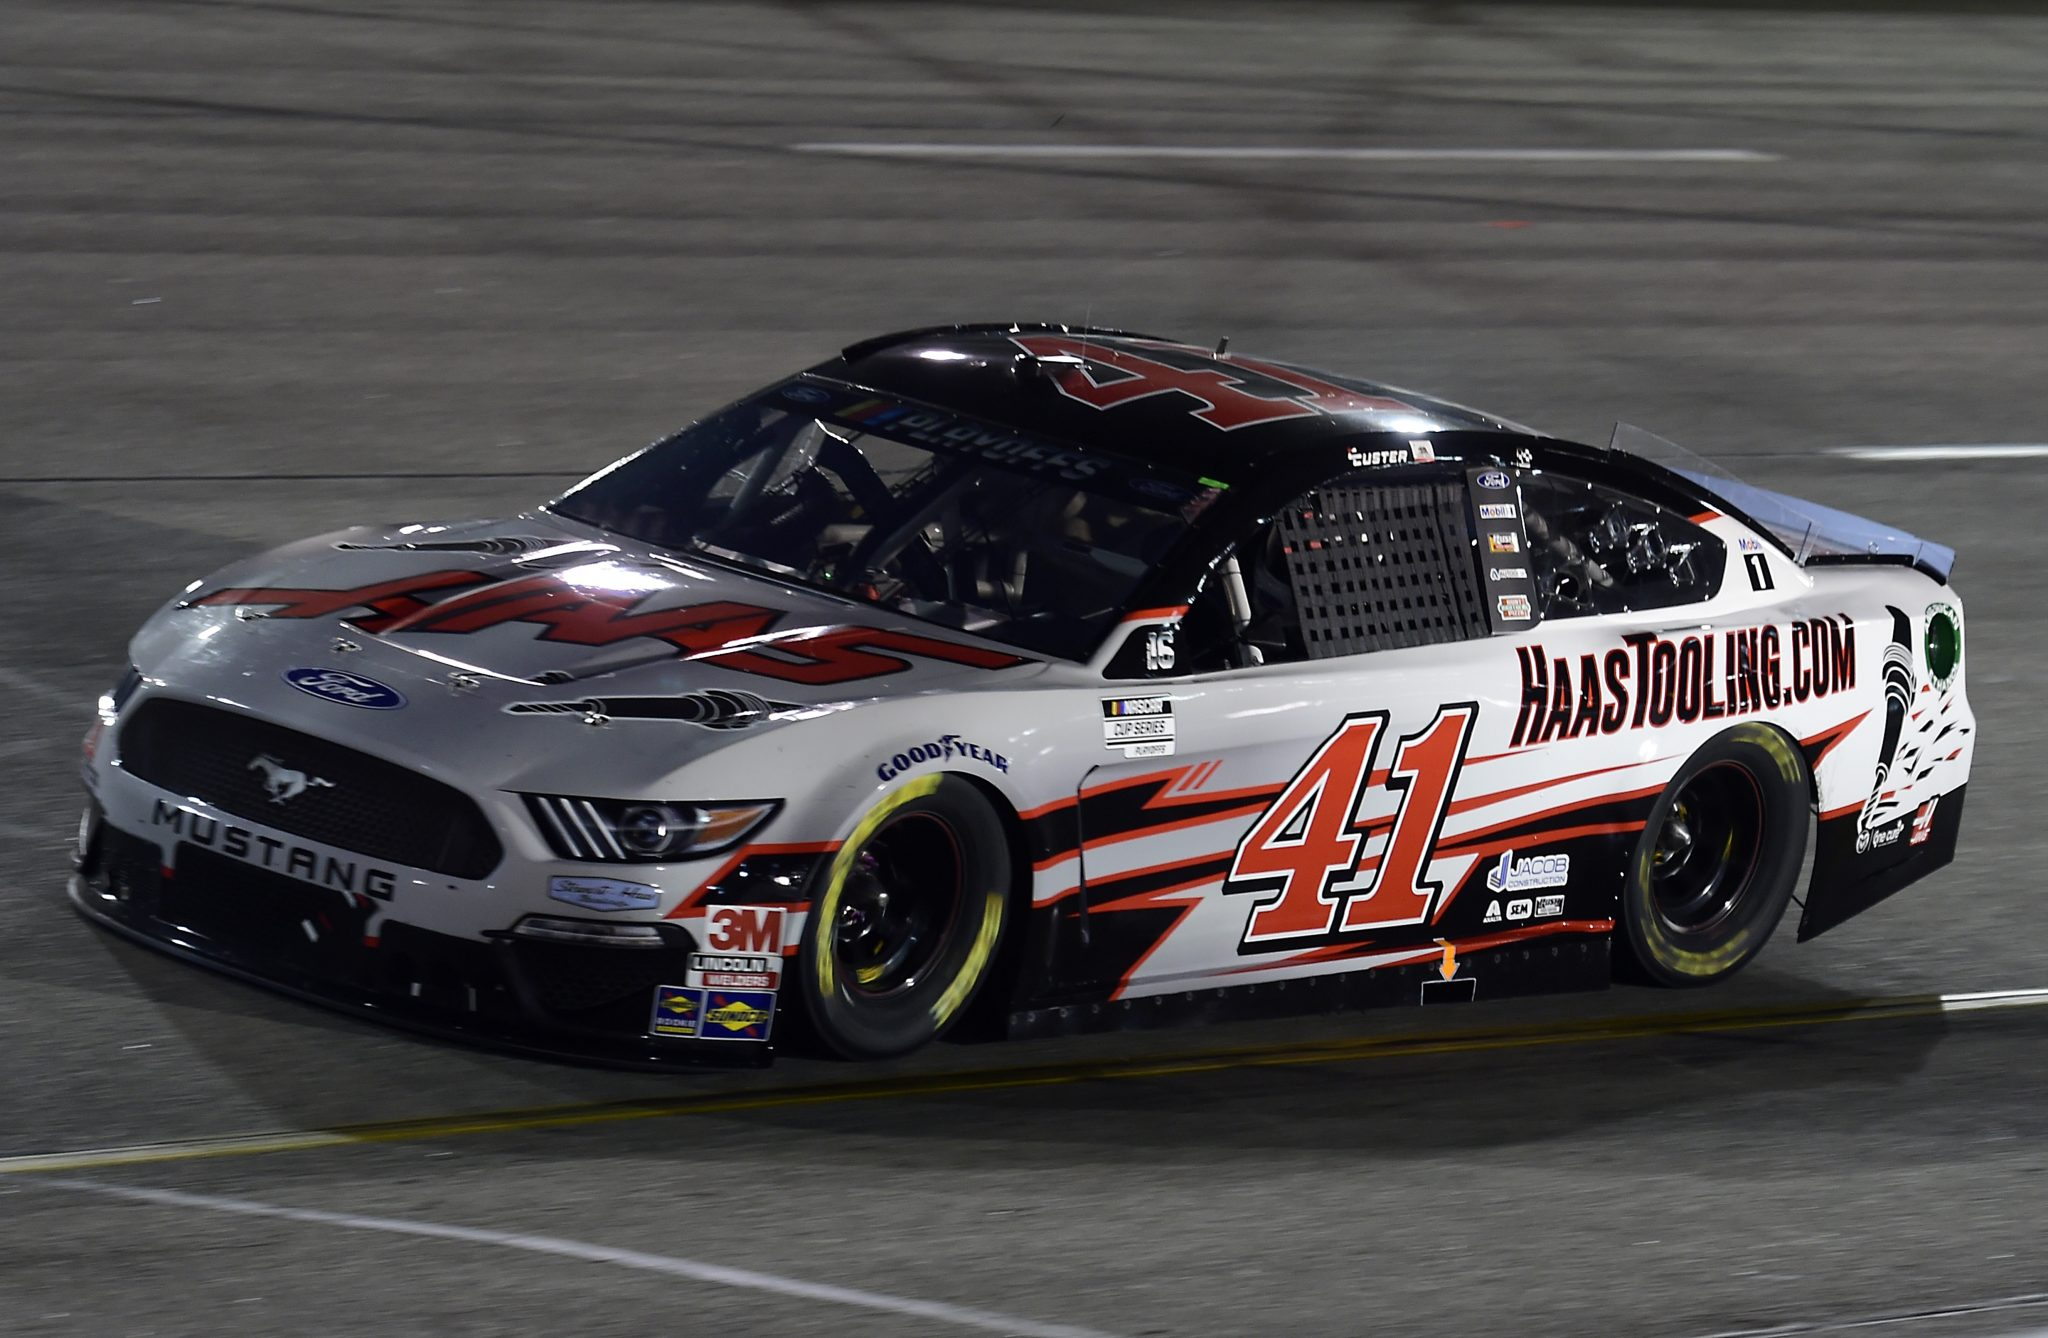 RICHMOND, VIRGINIA - SEPTEMBER 12: Cole Custer, driver of the #41 HaasTooling.com Ford, drives during the NASCAR Cup Series Federated Auto Parts 400 at Richmond Raceway on September 12, 2020 in Richmond, Virginia. (Photo by Jared C. Tilton/Getty Images) | Getty Images